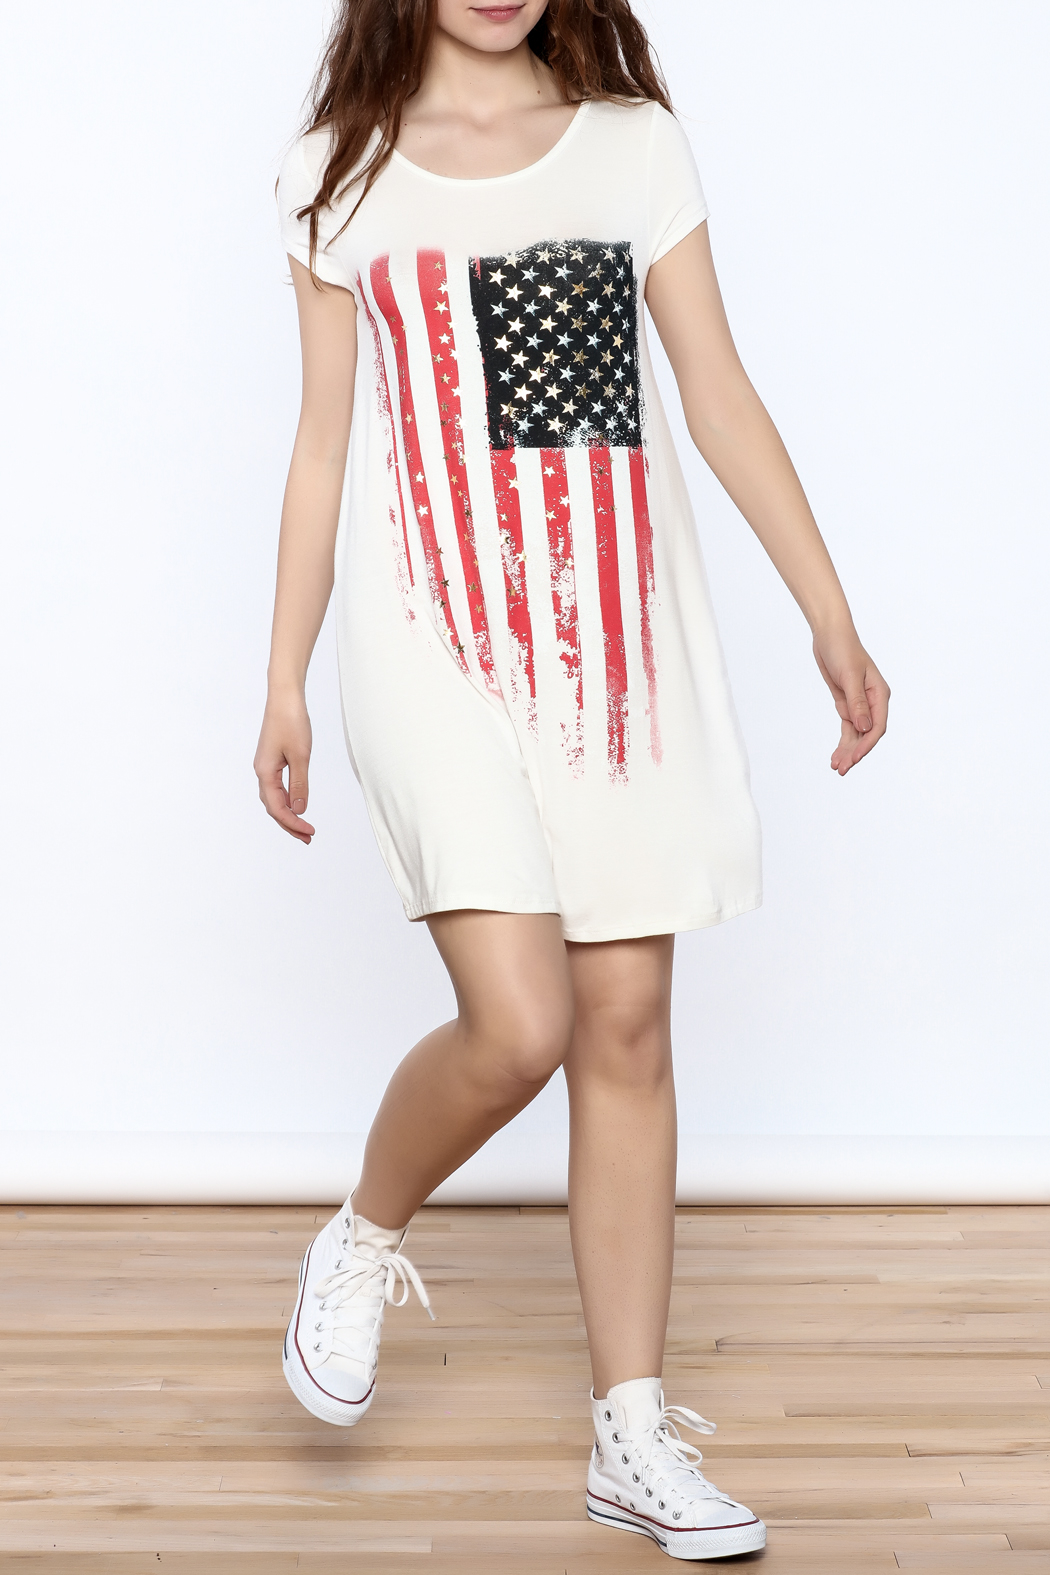 Yahoo! Shopping is the best place to comparison shop for Native American Clothing. Compare products, compare prices, read reviews and merchant ratings.